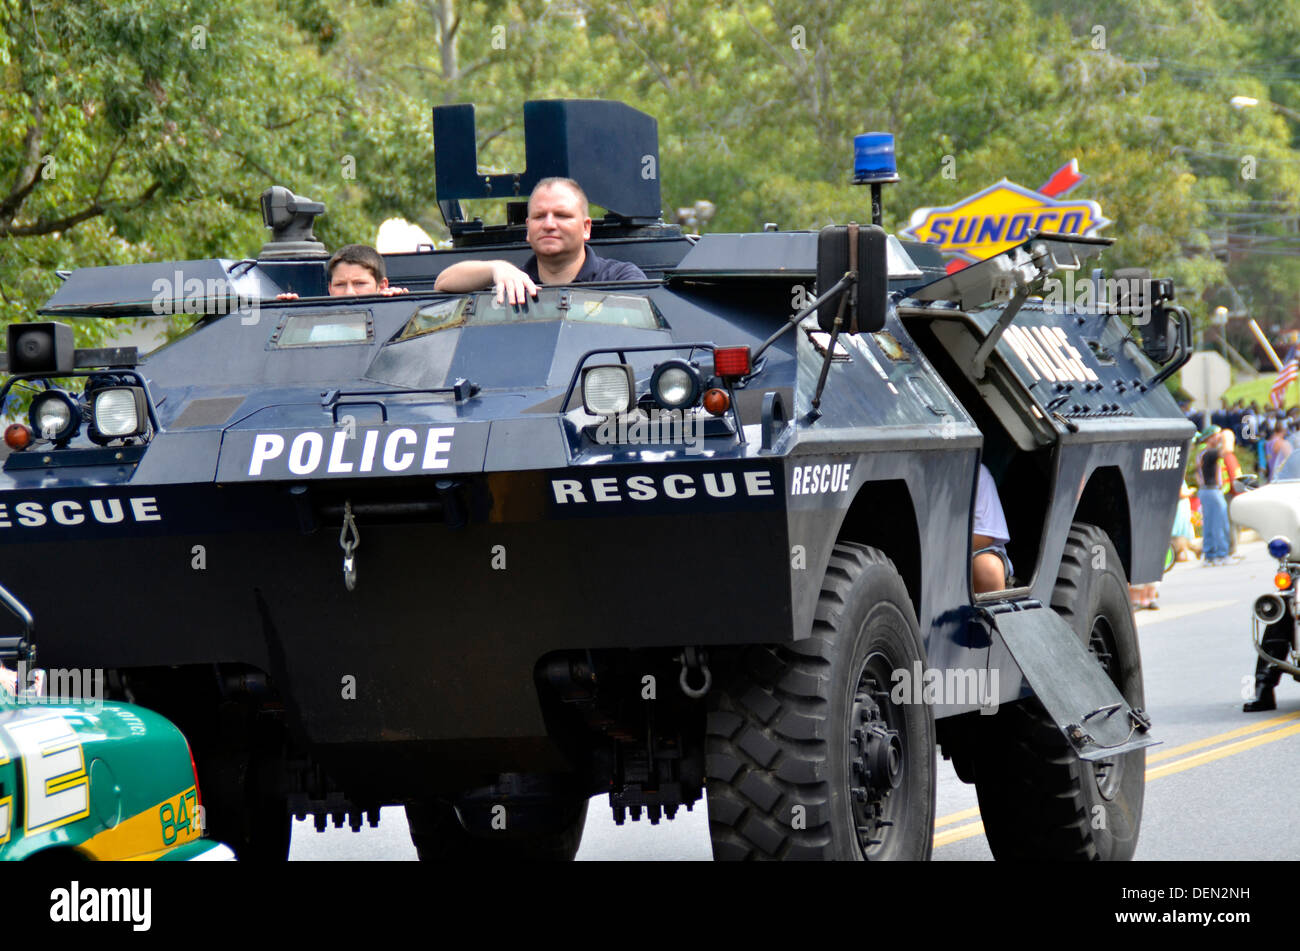 Policeman driving an armored personnel carrier with his children riding inside during a parade in Greenbelt, Maryland - Stock Image